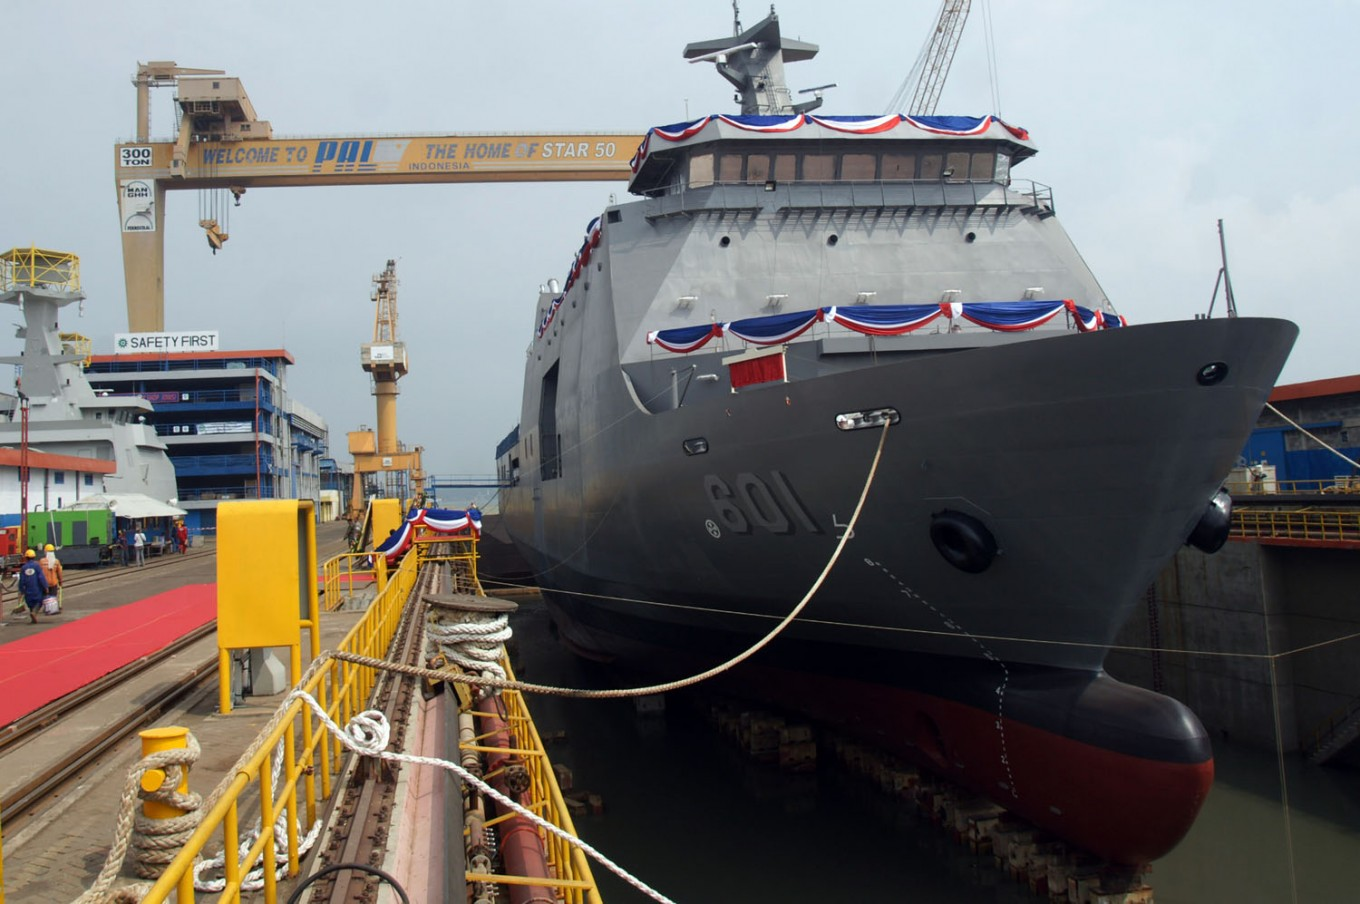 PAL Indonesia expands into warships